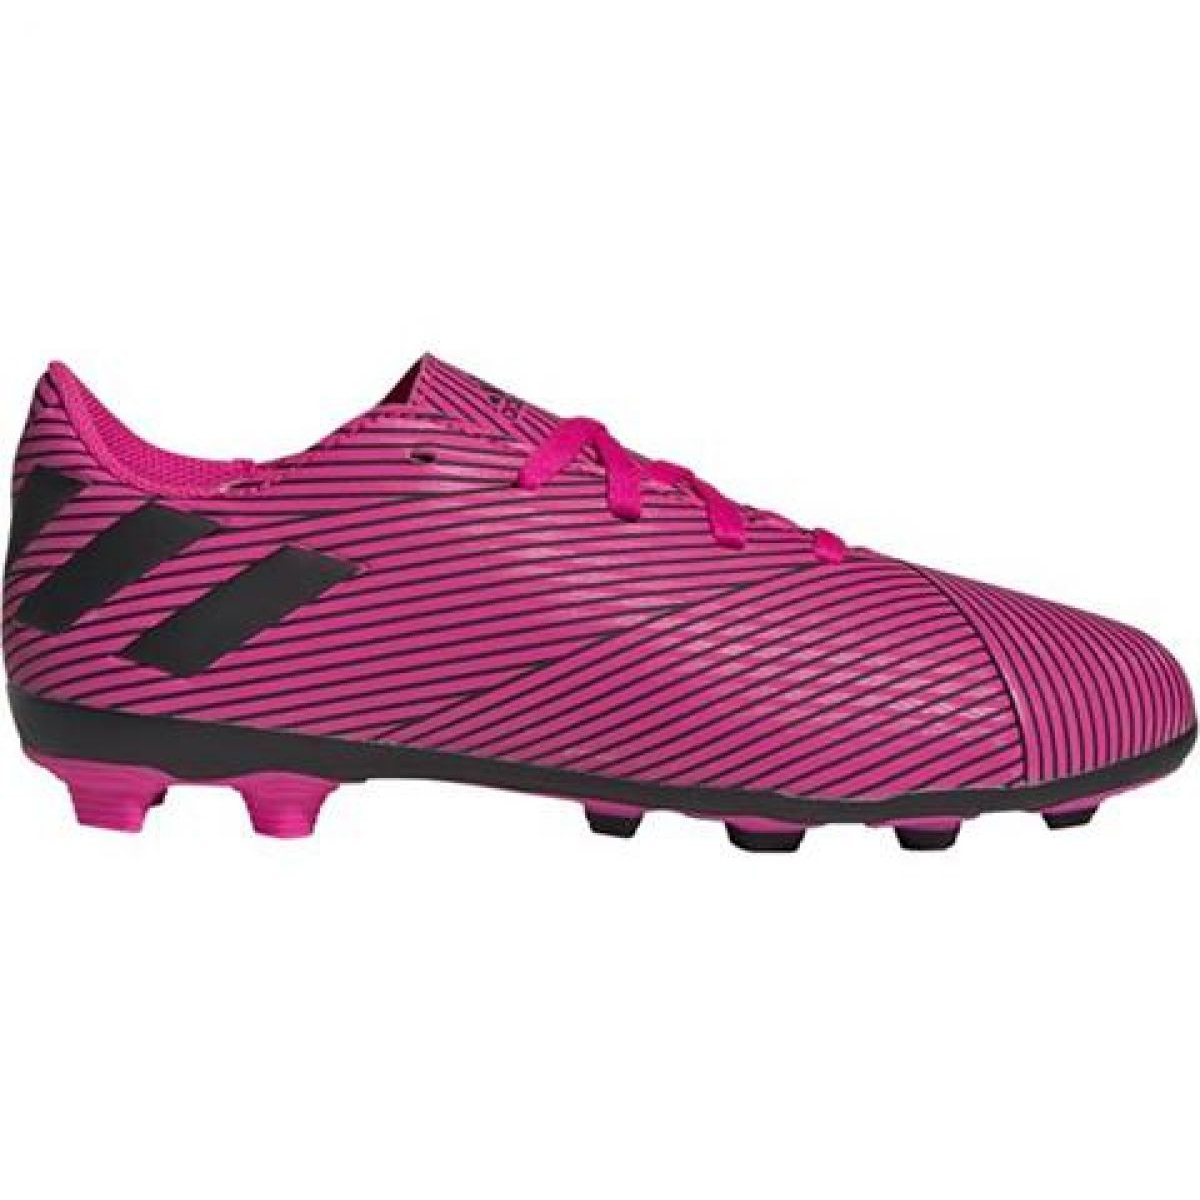 messi boots pink low price aa5c4 c8059